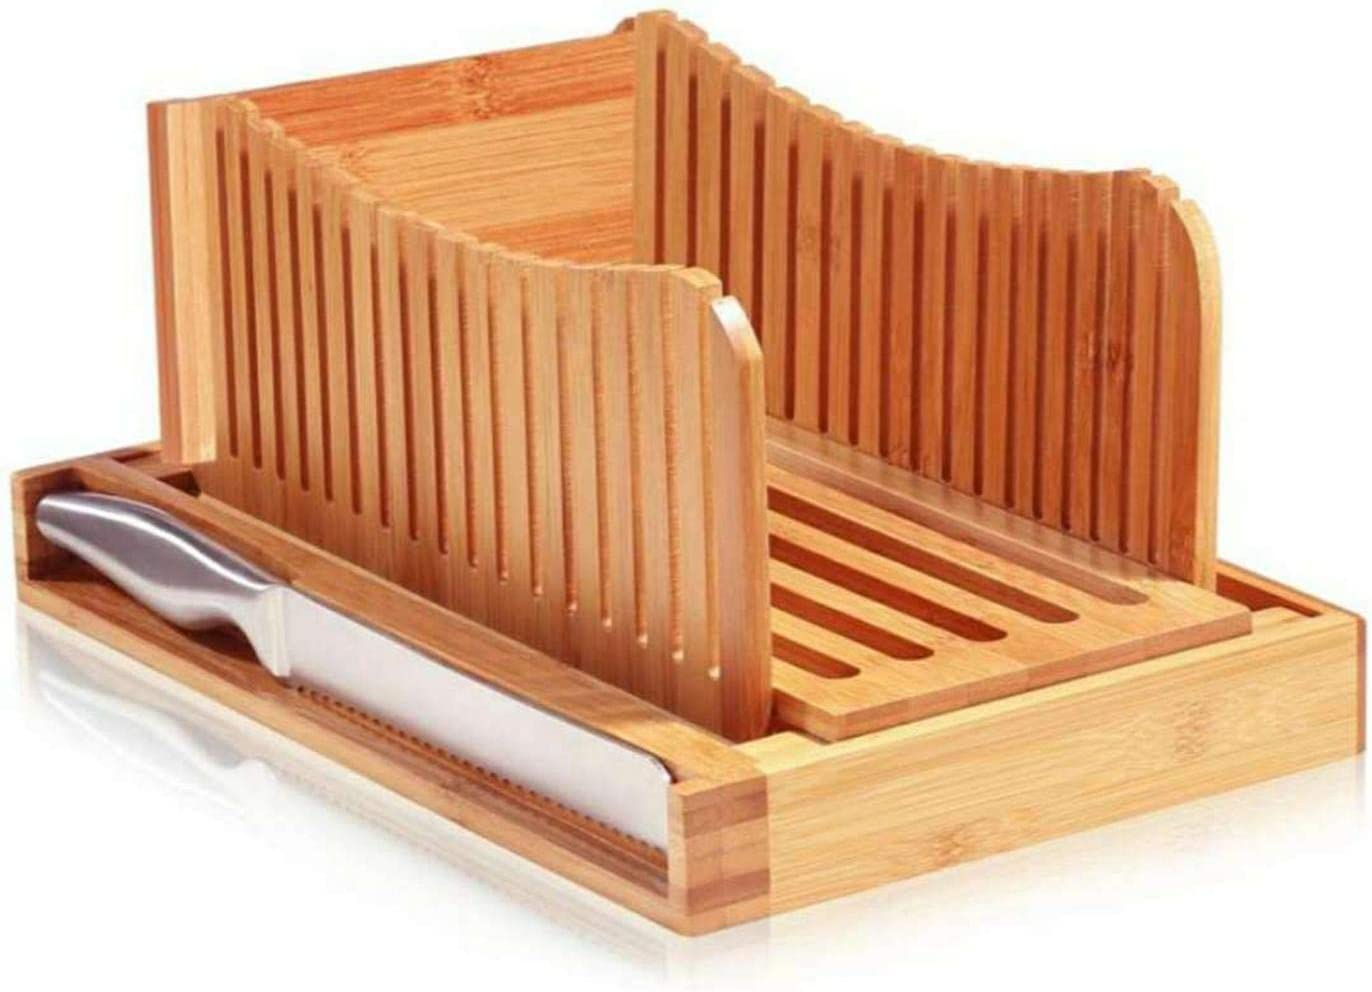 SMILOH Foldable NEW bamboo bread slicer Max 71% OFF machi cutting